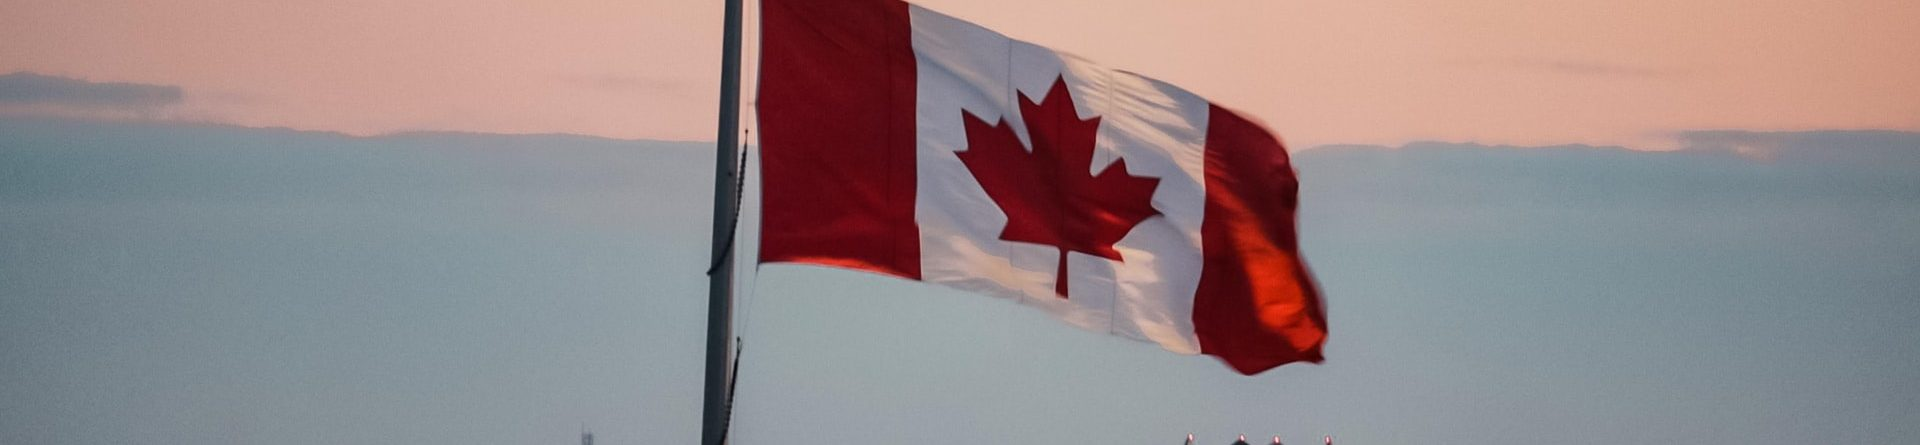 Moving to Canada through education